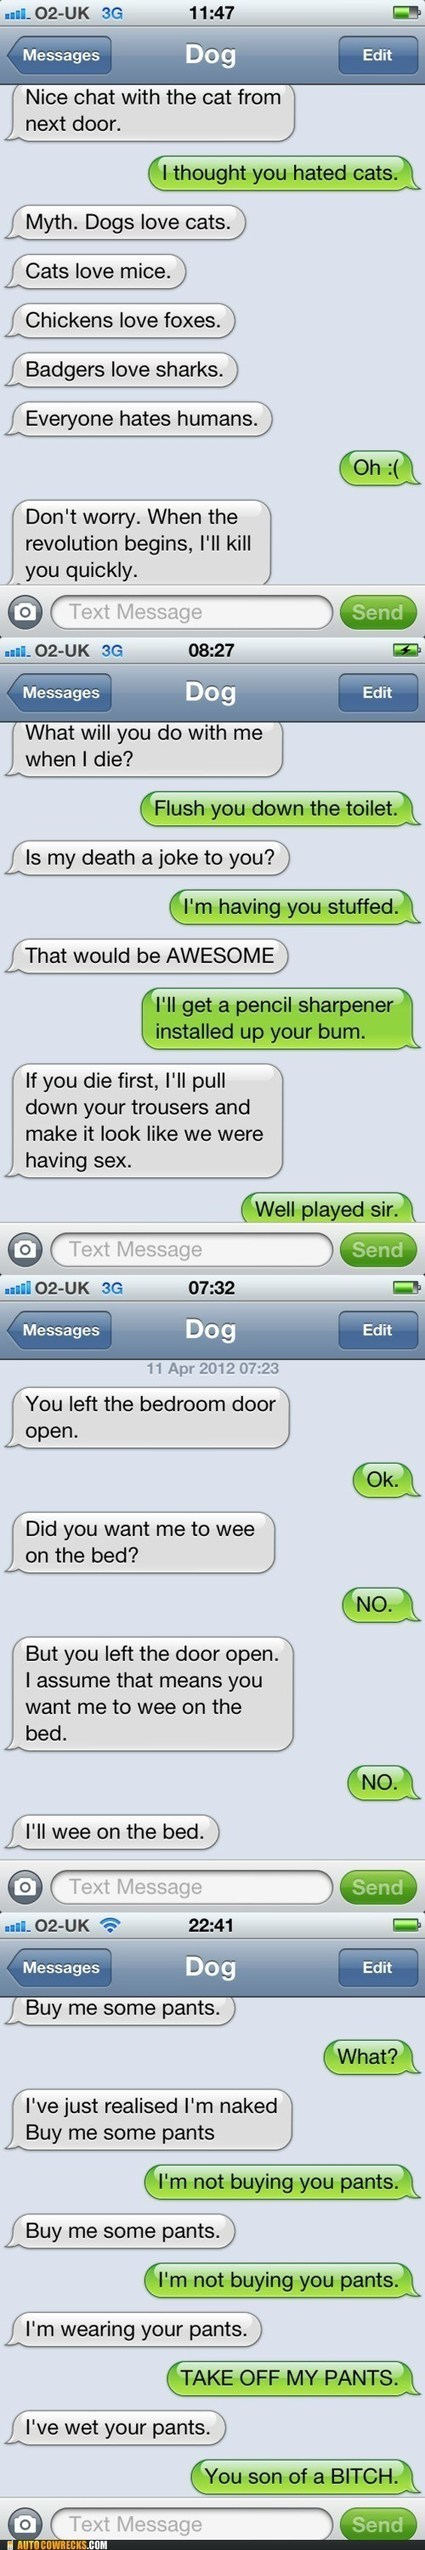 Autocowrecks: If Dogs Could Text, Part II - EPIC FAIL Funny Videos ... | Animal Health | Scoop.it